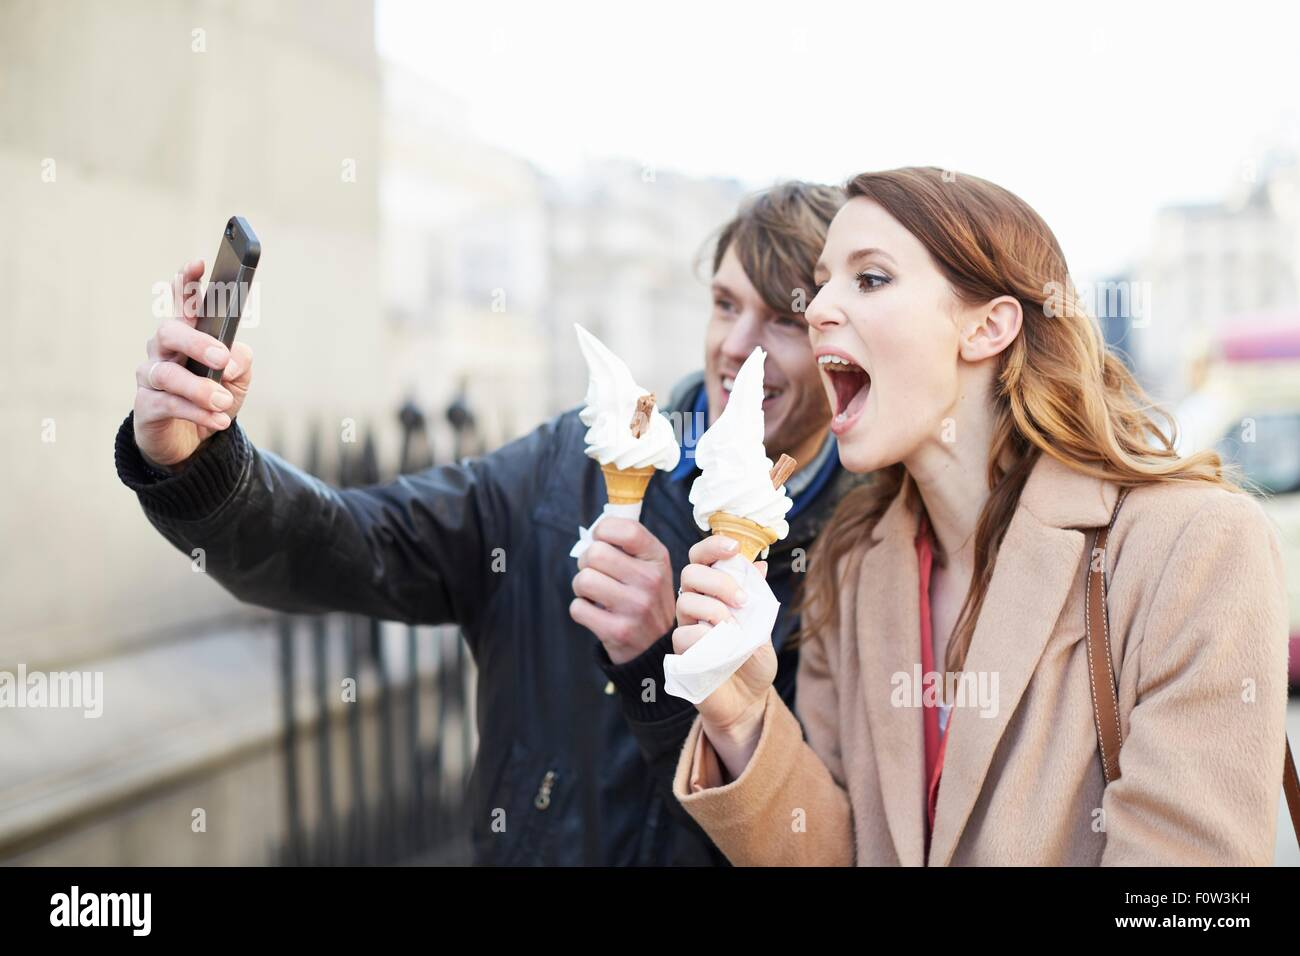 Couple avec ice cream cones en tenant selfies smartphone, London, UK Photo Stock